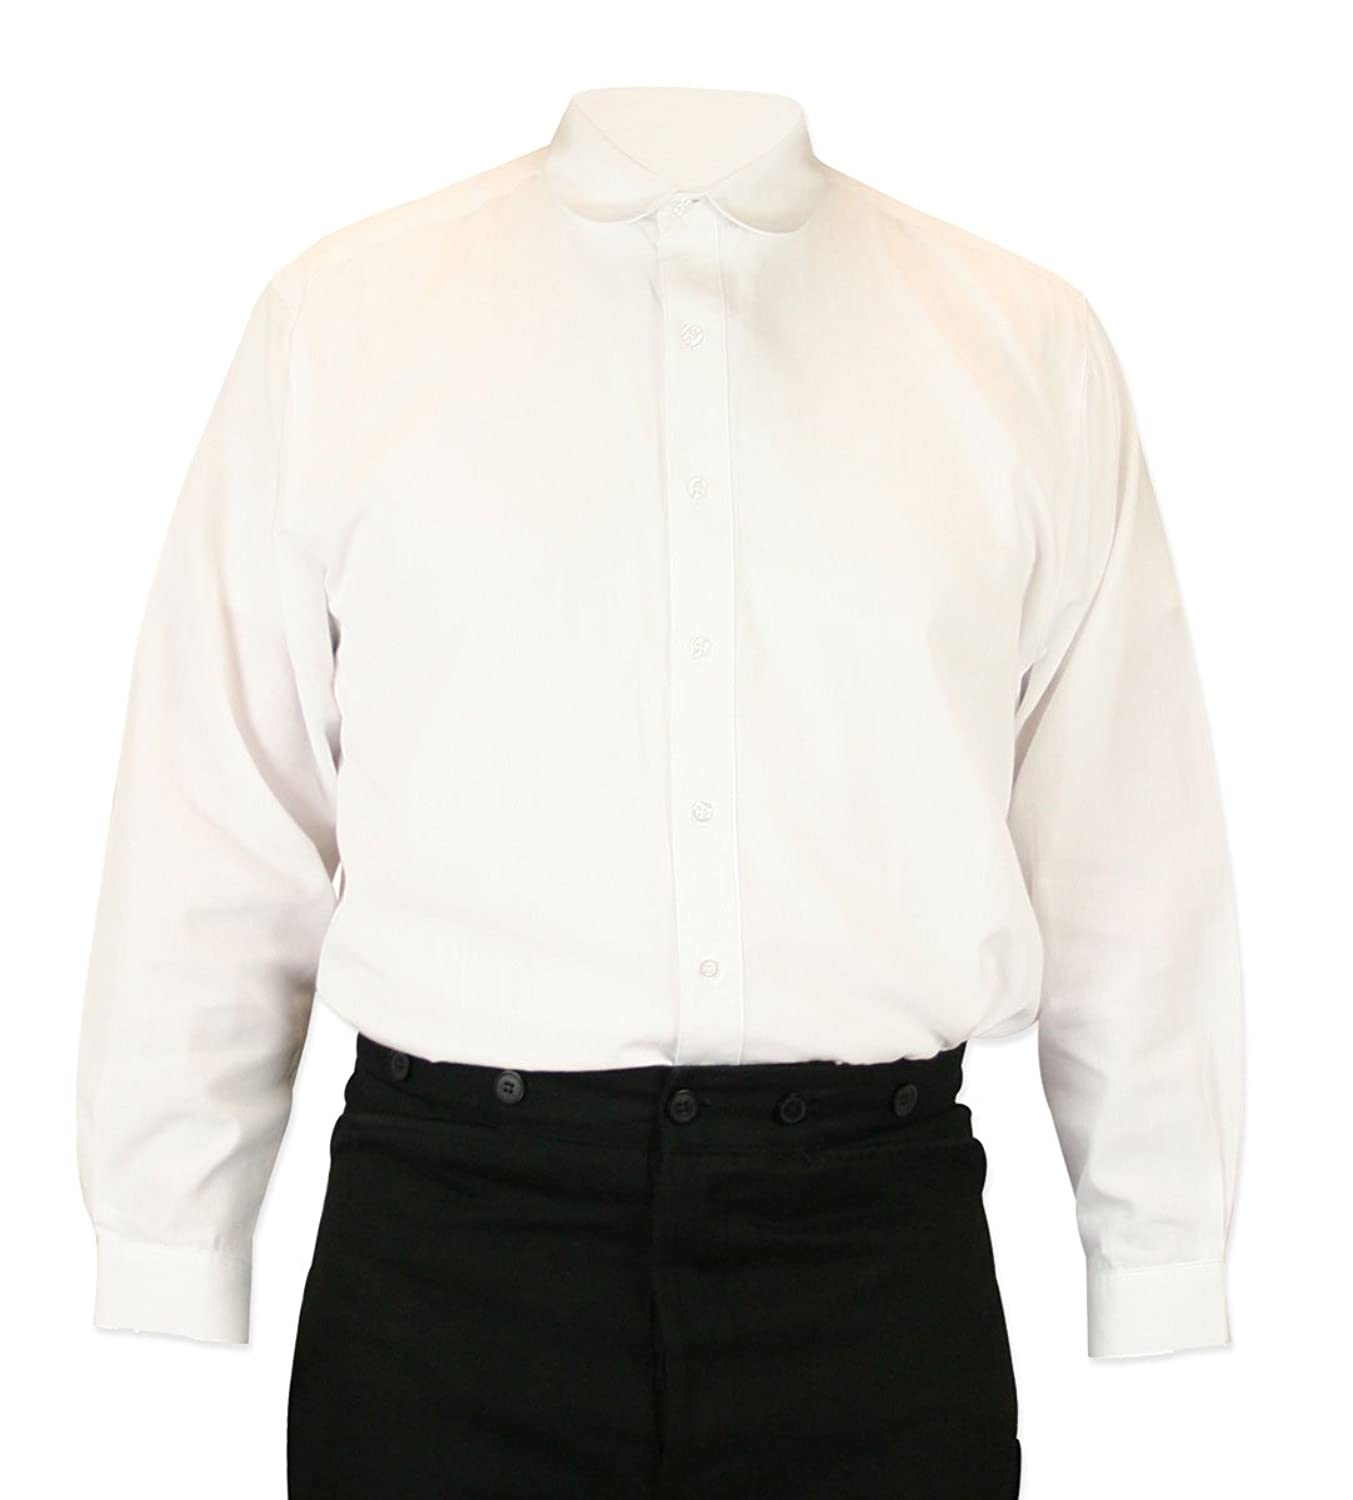 Downton Abbey Men's Fashion Guide Virgil Club Collar Dress Shirt $59.95 AT vintagedancer.com